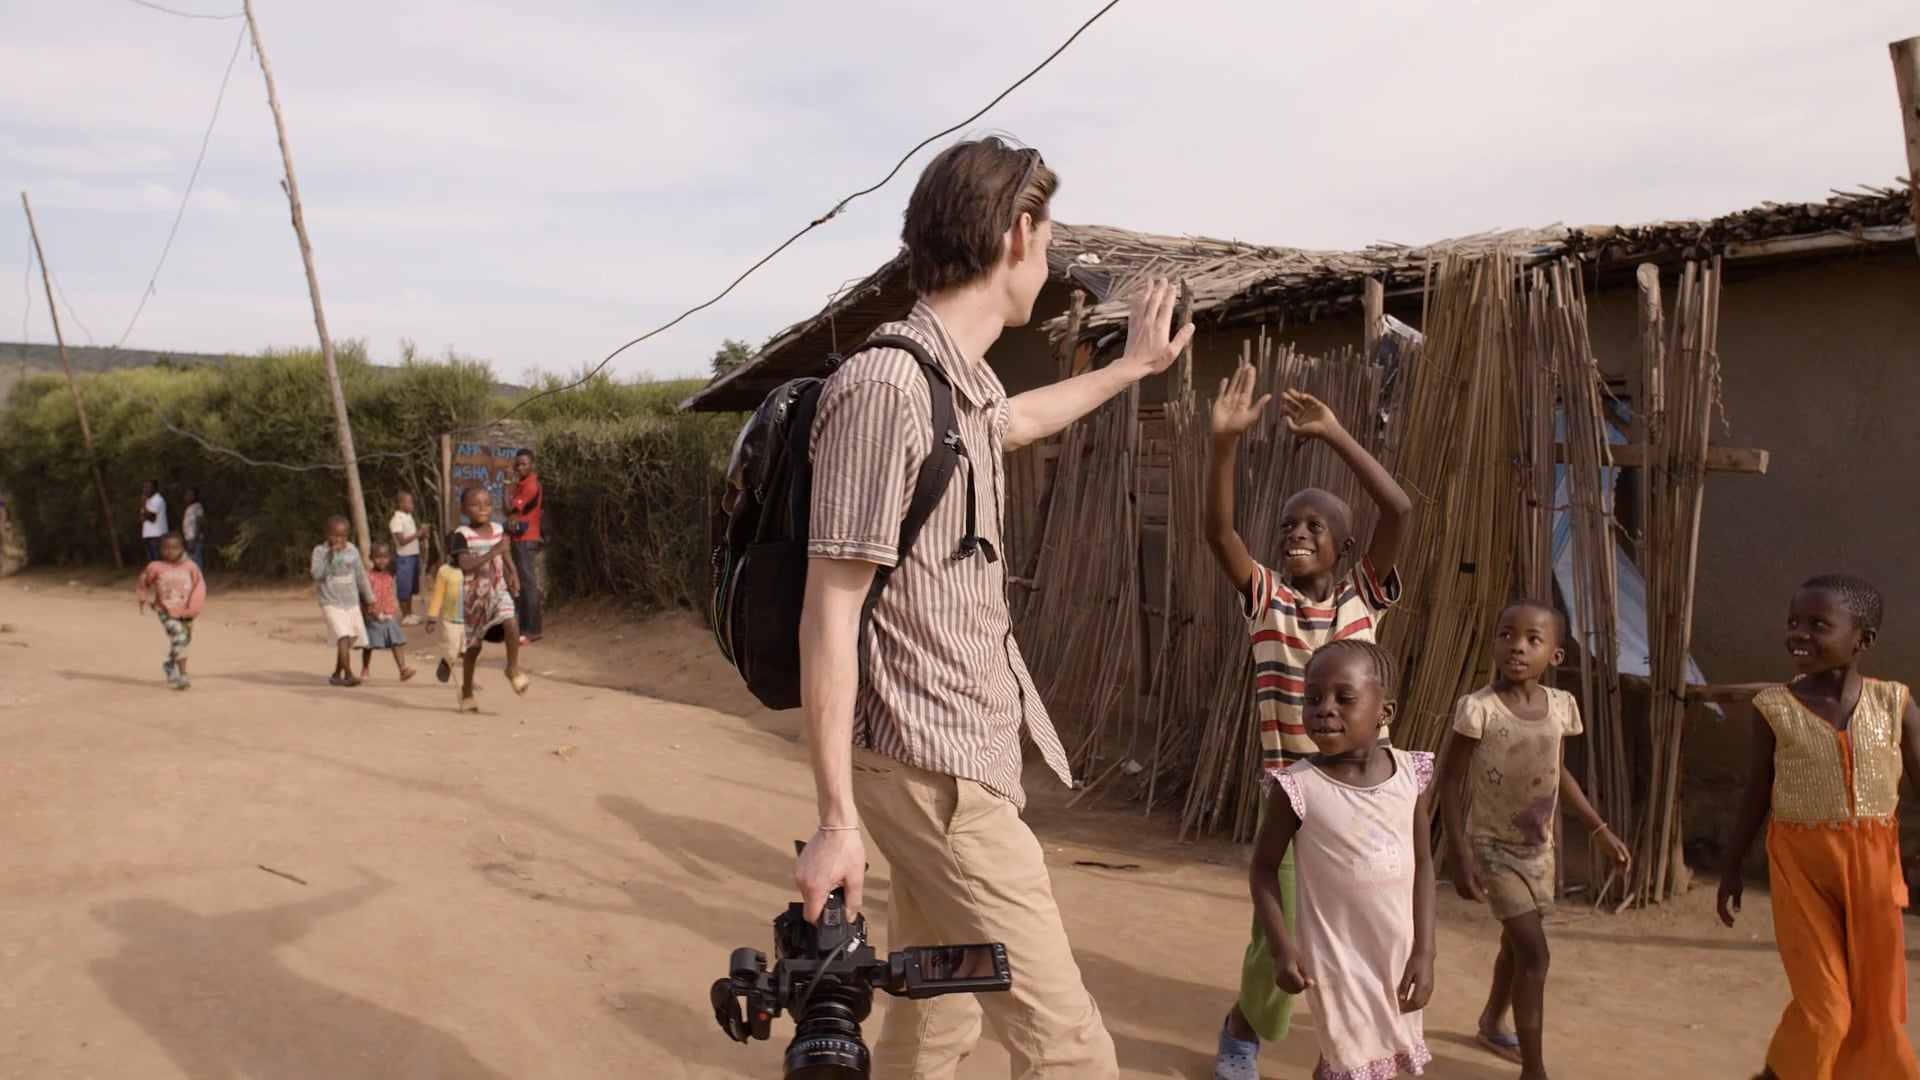 Can You Go to Africa... Next Week? - A Student's Experience